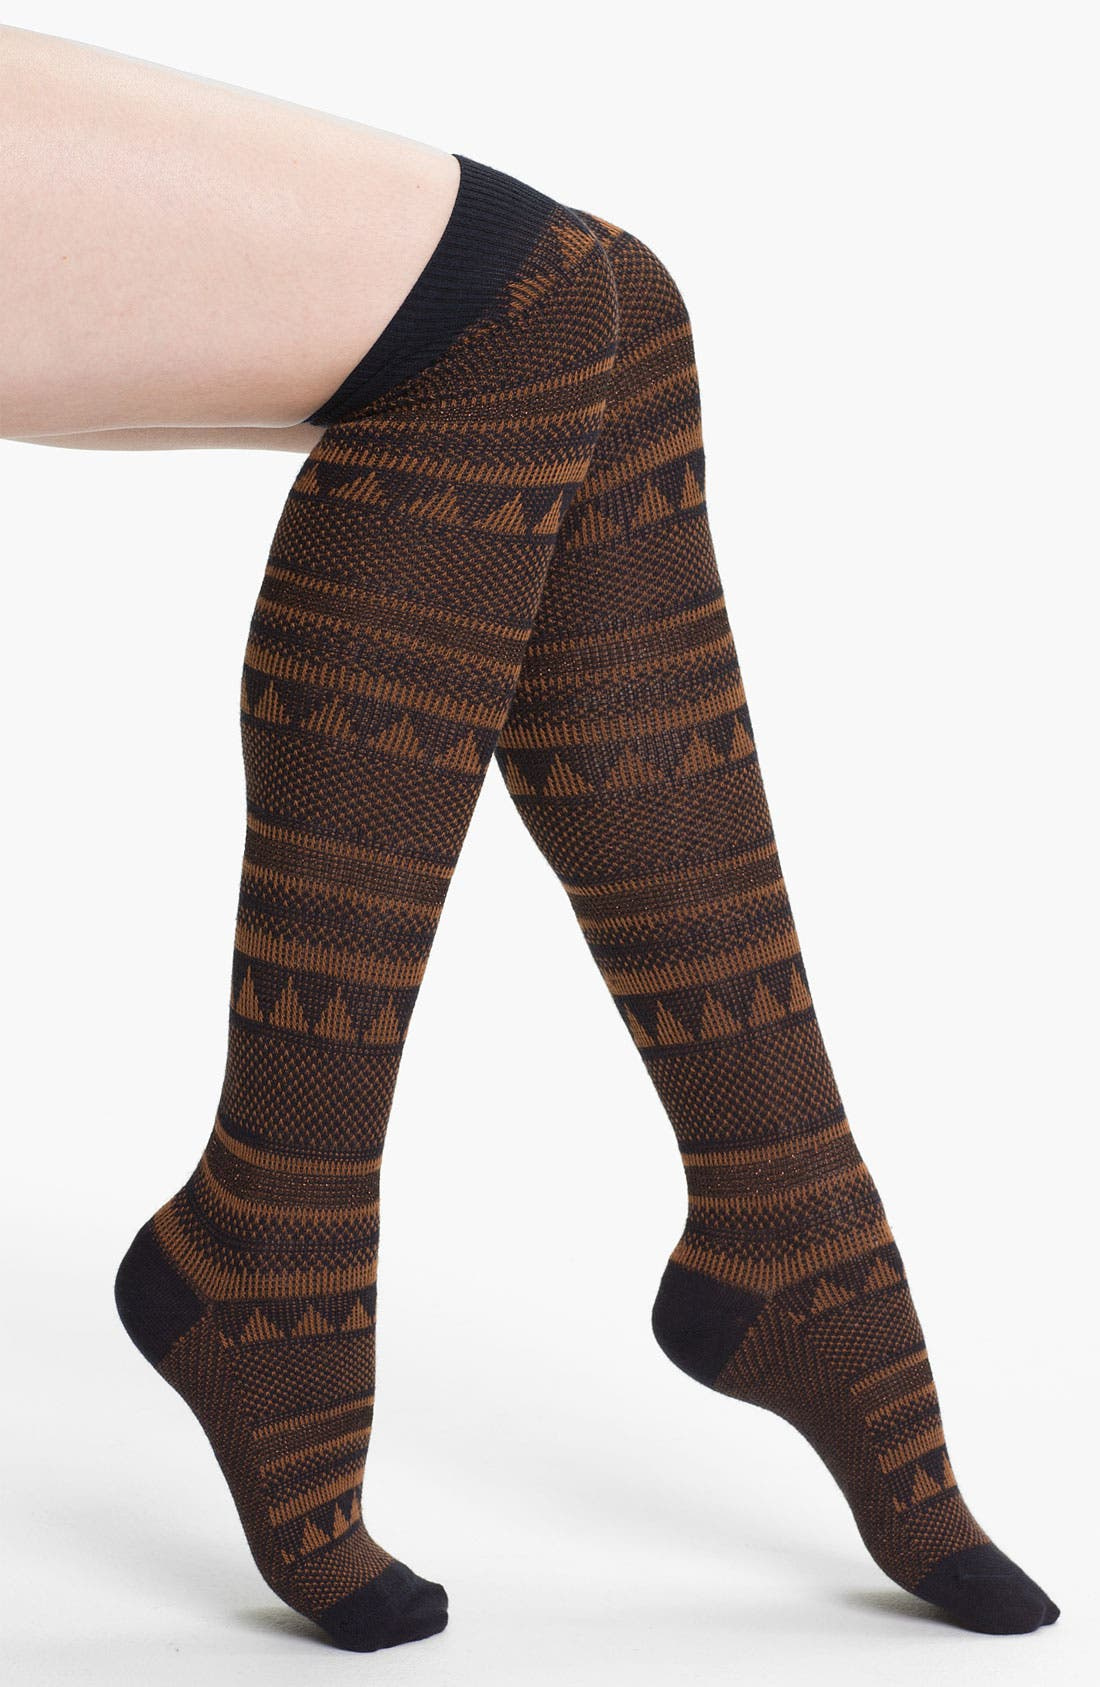 Alternate Image 1 Selected - Free People 'Peaks & Valleys' Over the Knee Socks